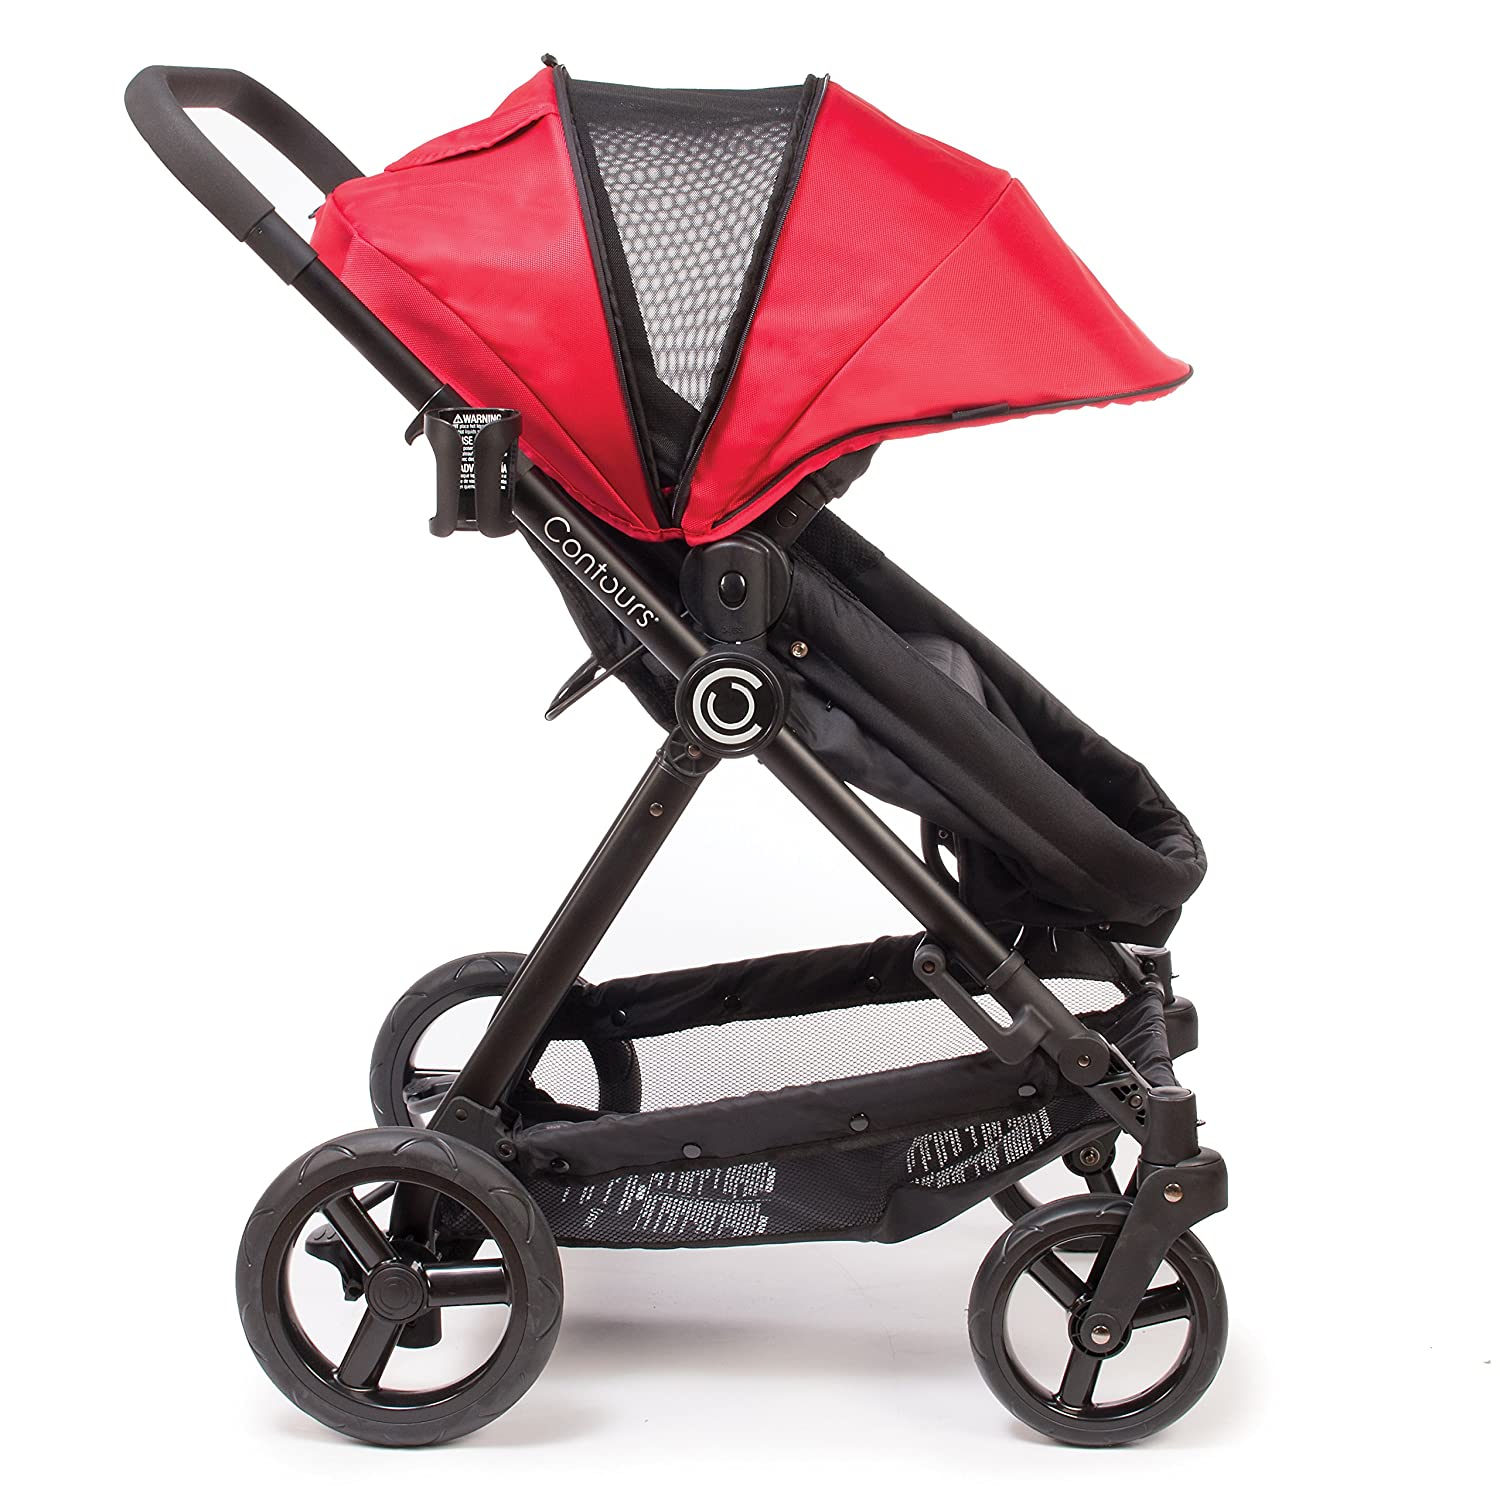 Contours Bliss 4-in-1 Convertible Stroller System